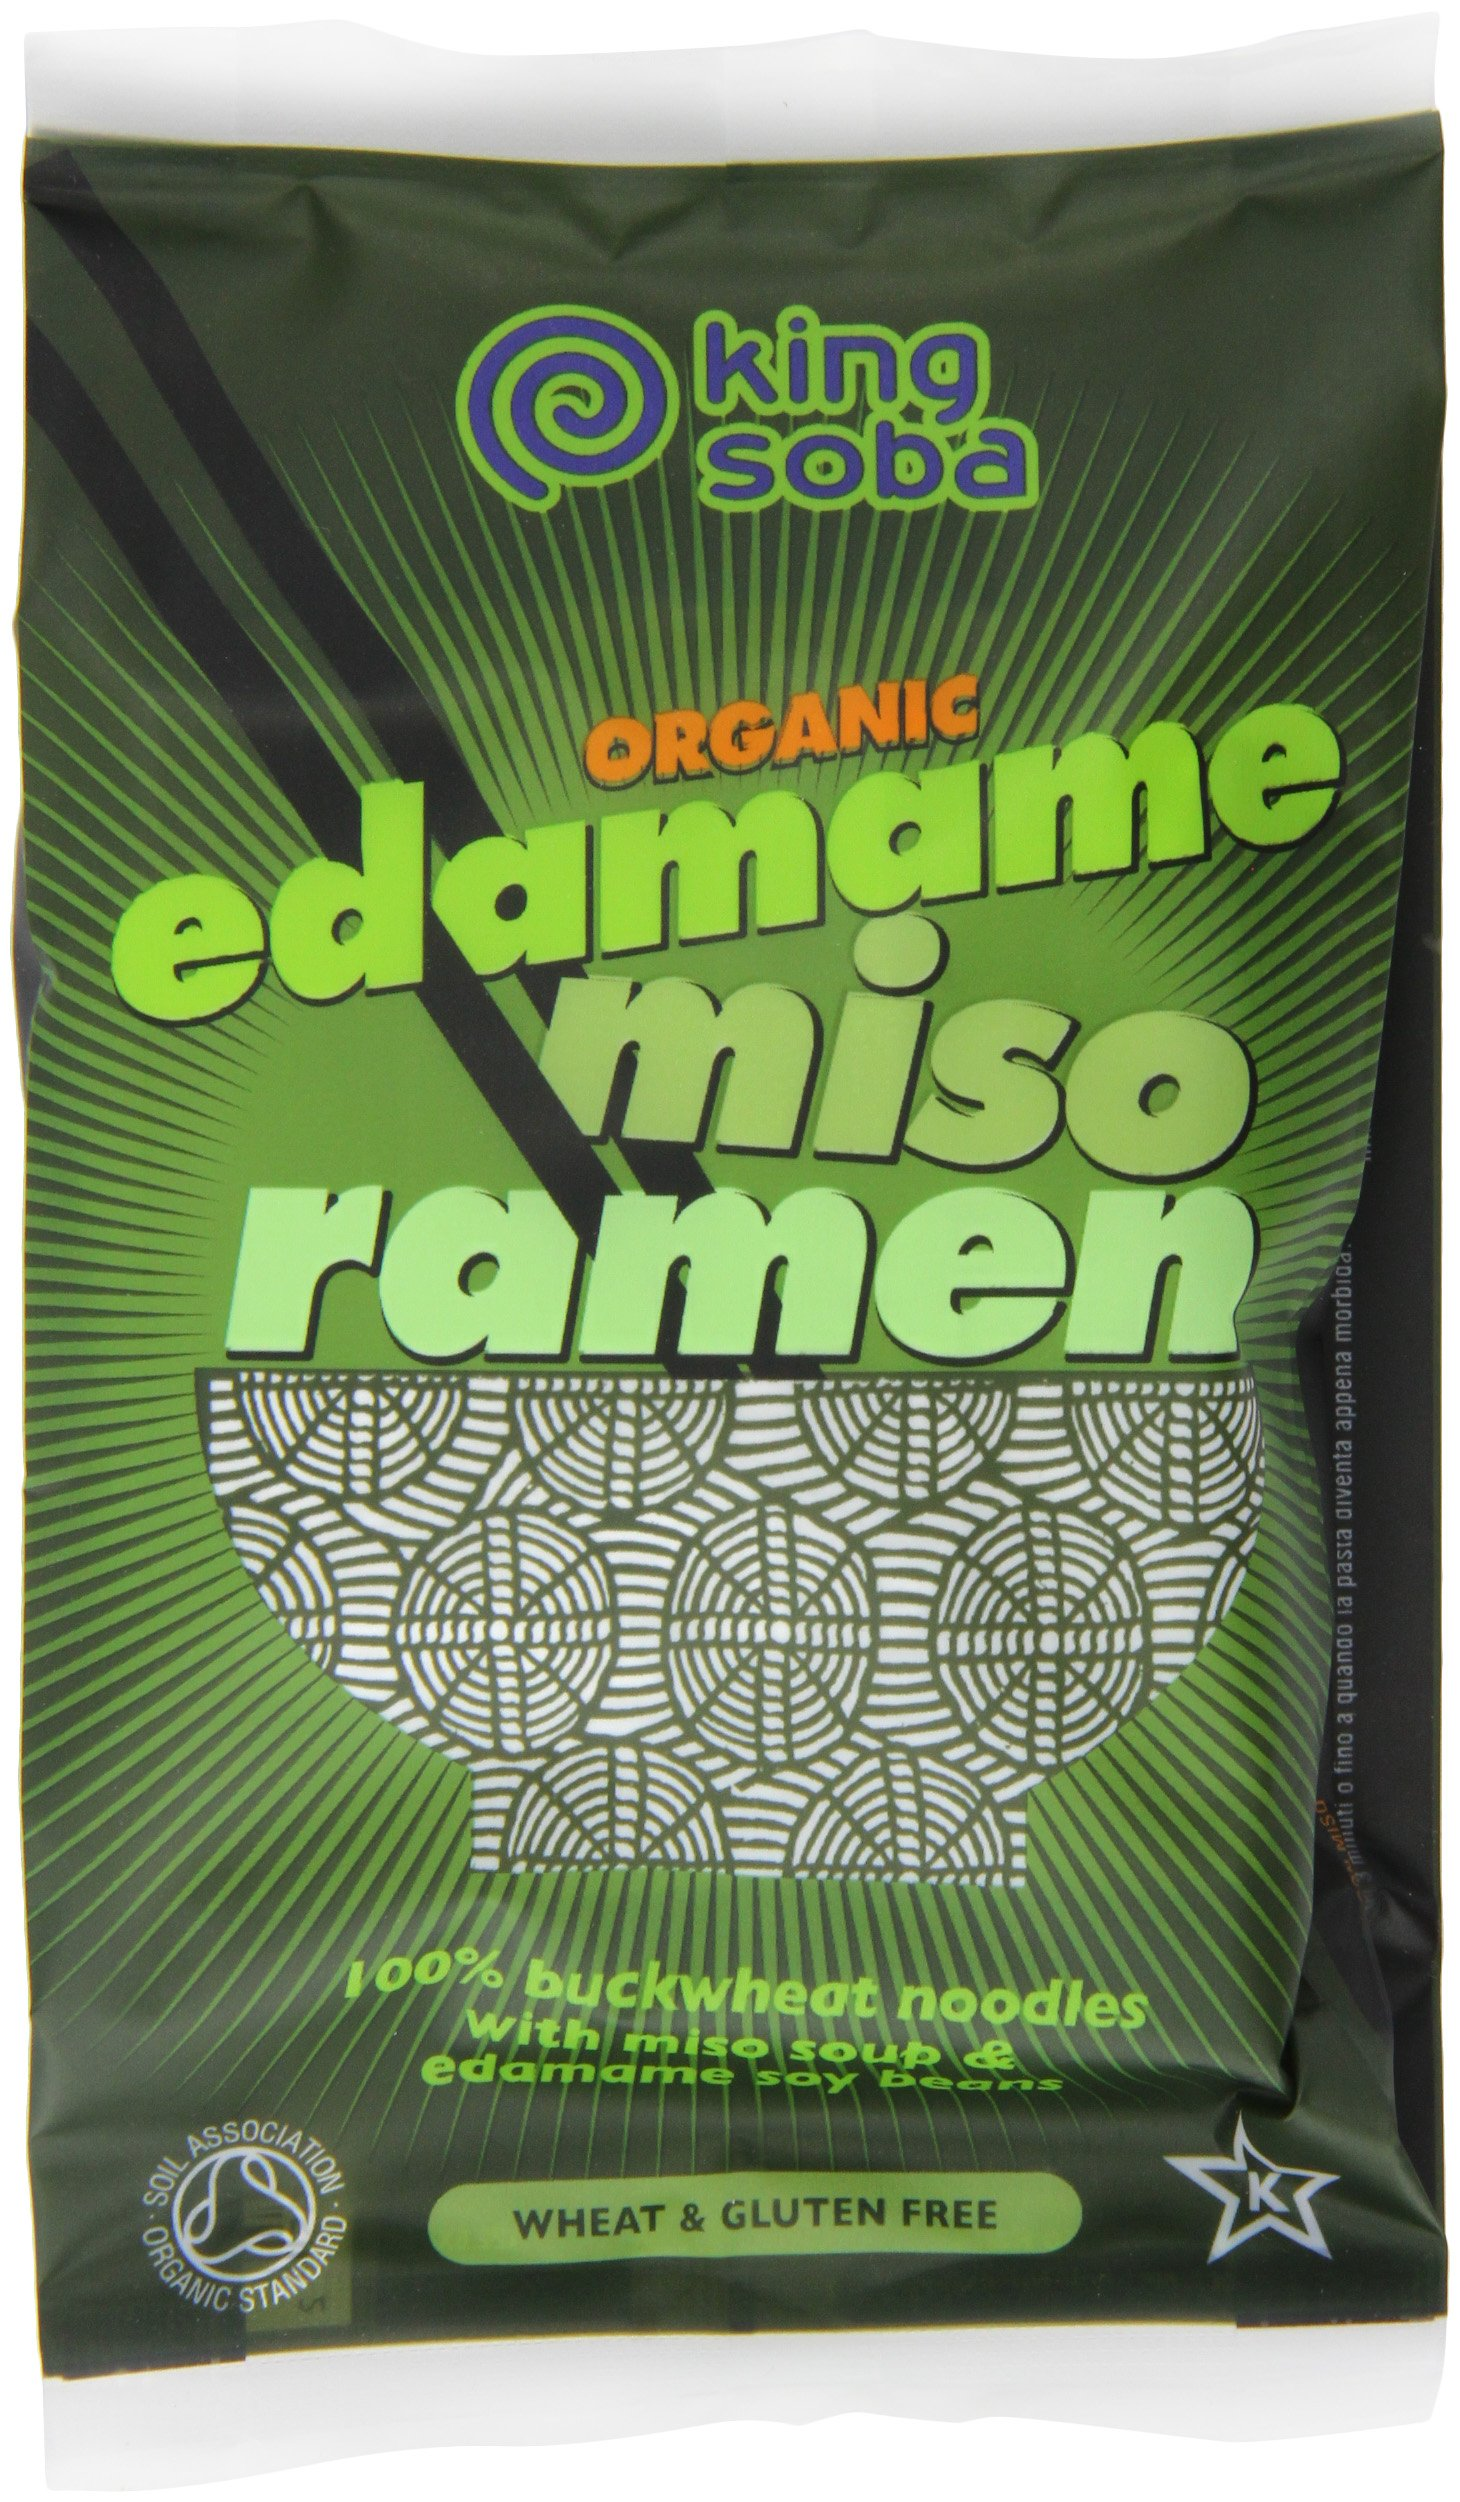 King Soba Noodles Organic Edamame Miso Ramen Noodles, 2.8 Ounce (Pack of 6)